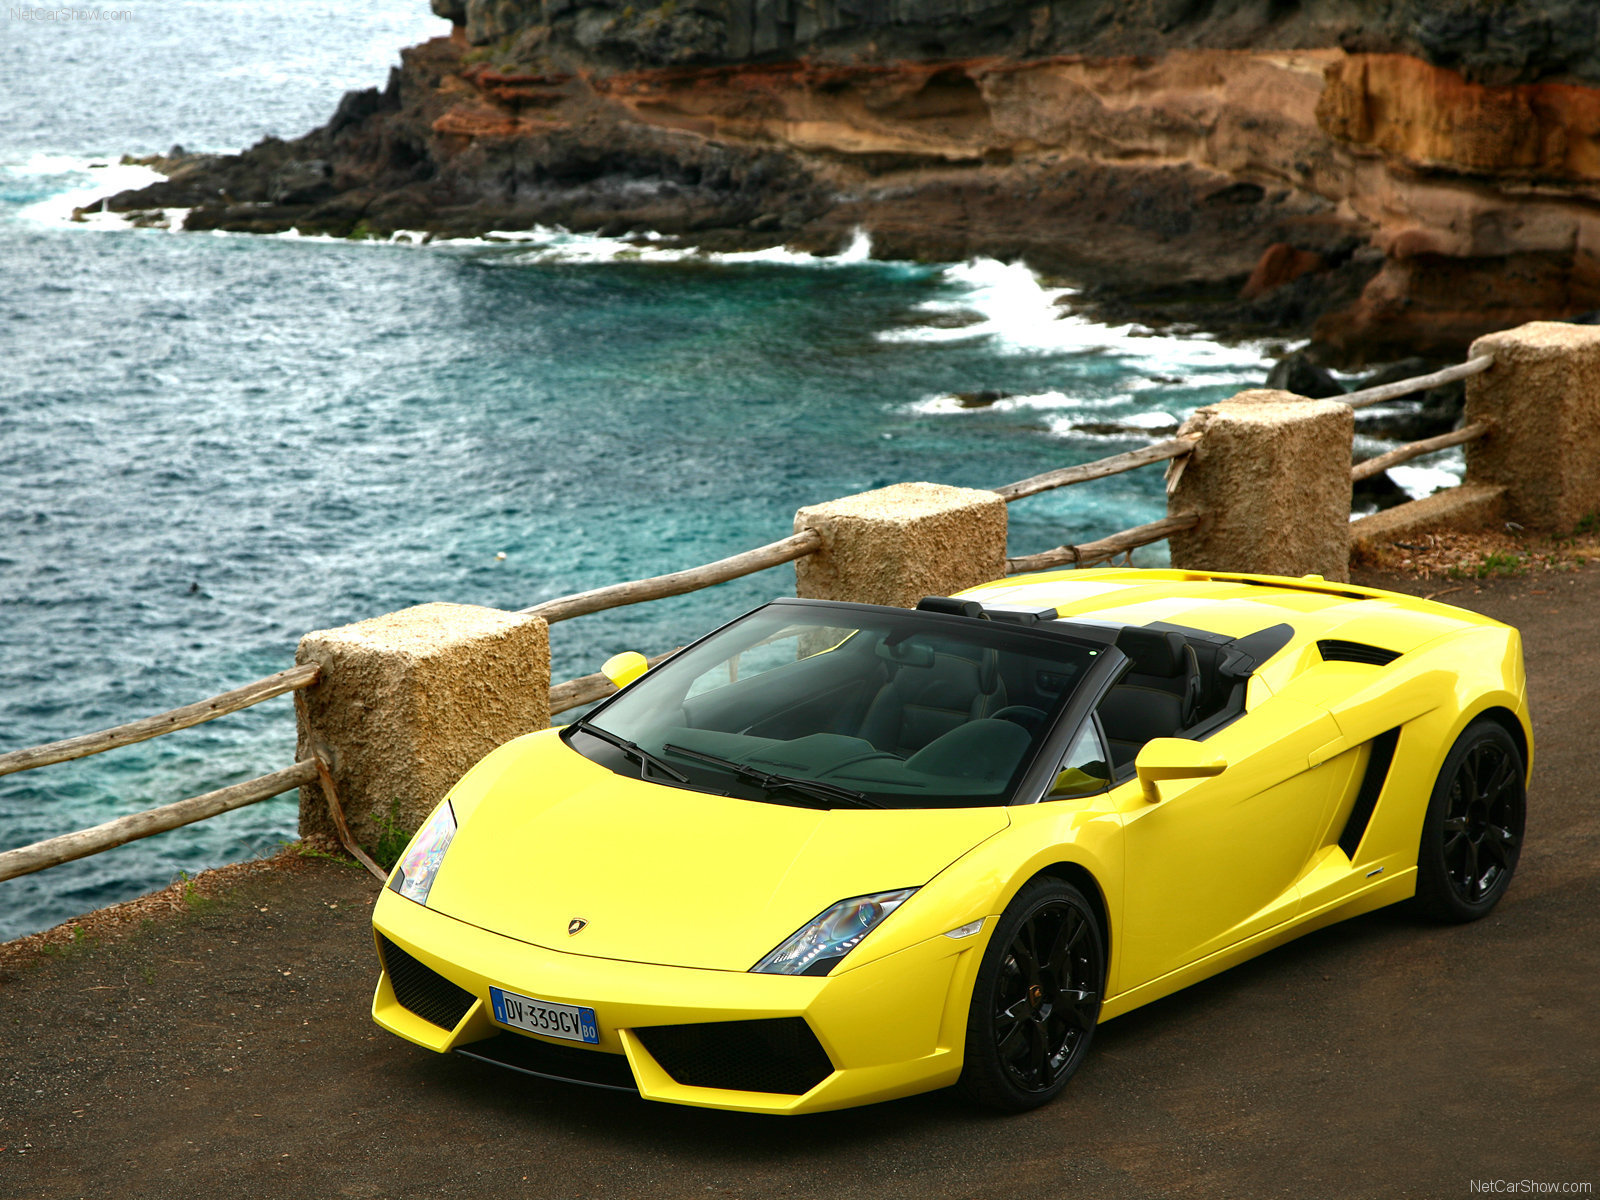 Lamborghini Images Gallardo LP560 4 Spyder 2009 HD Wallpaper And Background Photos